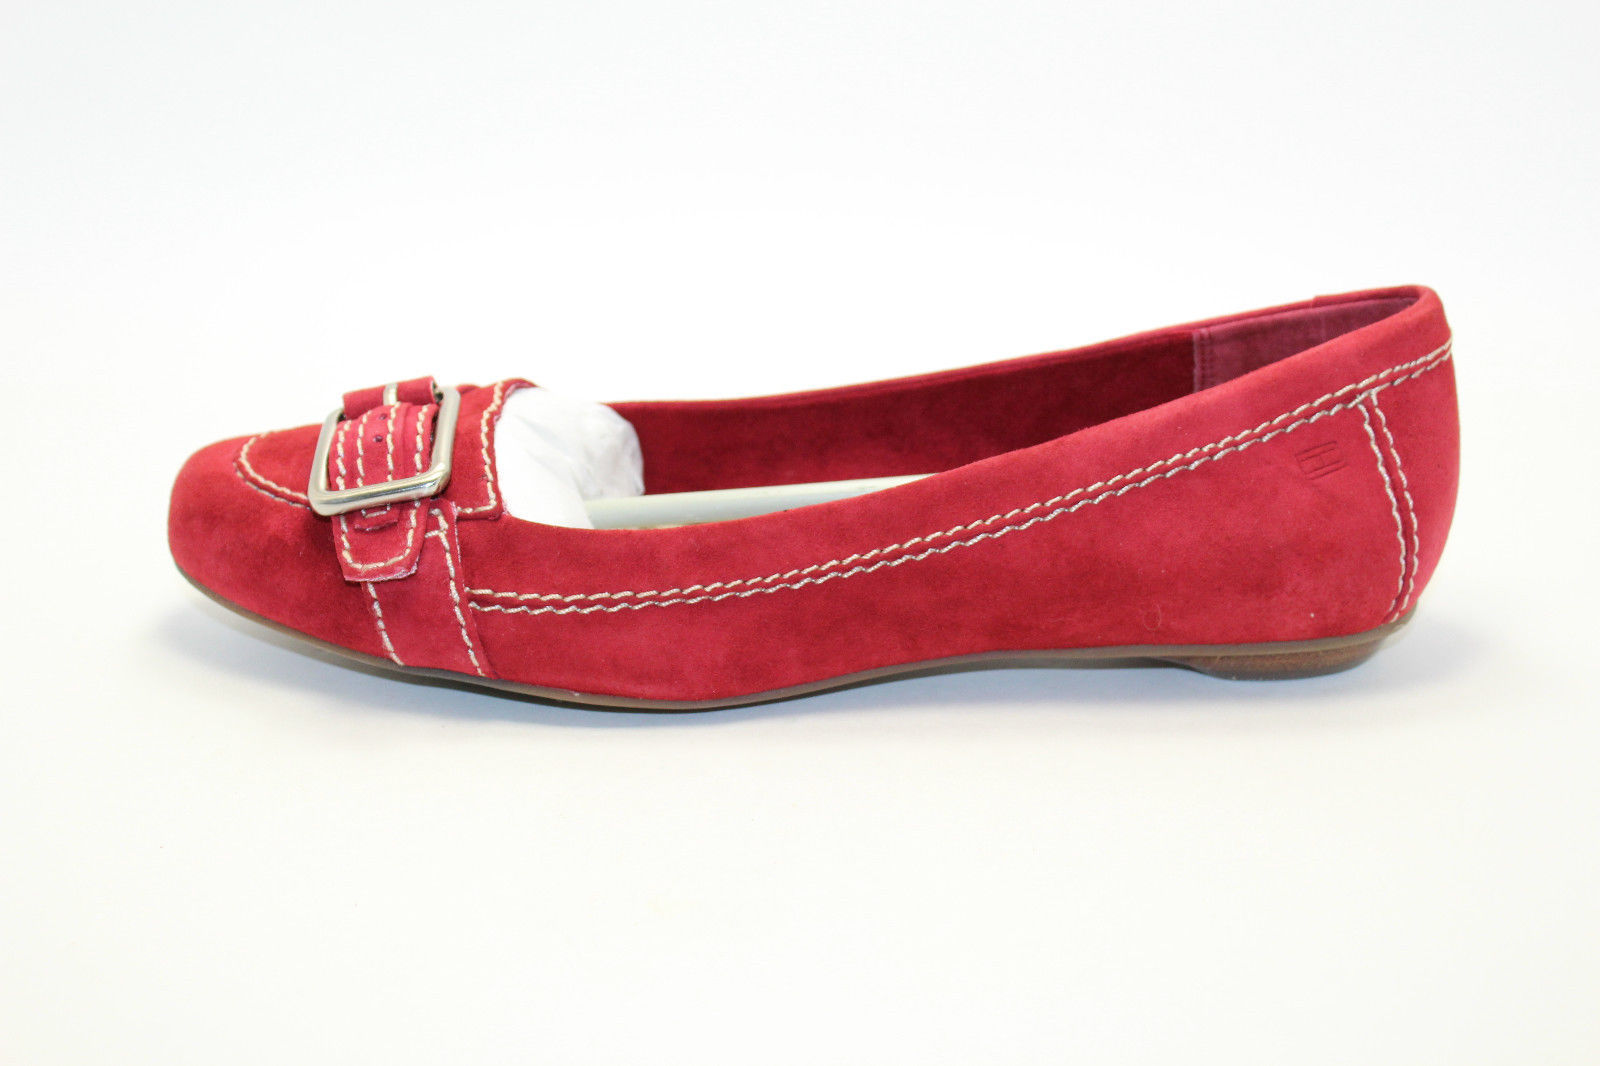 Tommy Hilfiger - Womens Red - Flats Loafers Slippers - New in Box